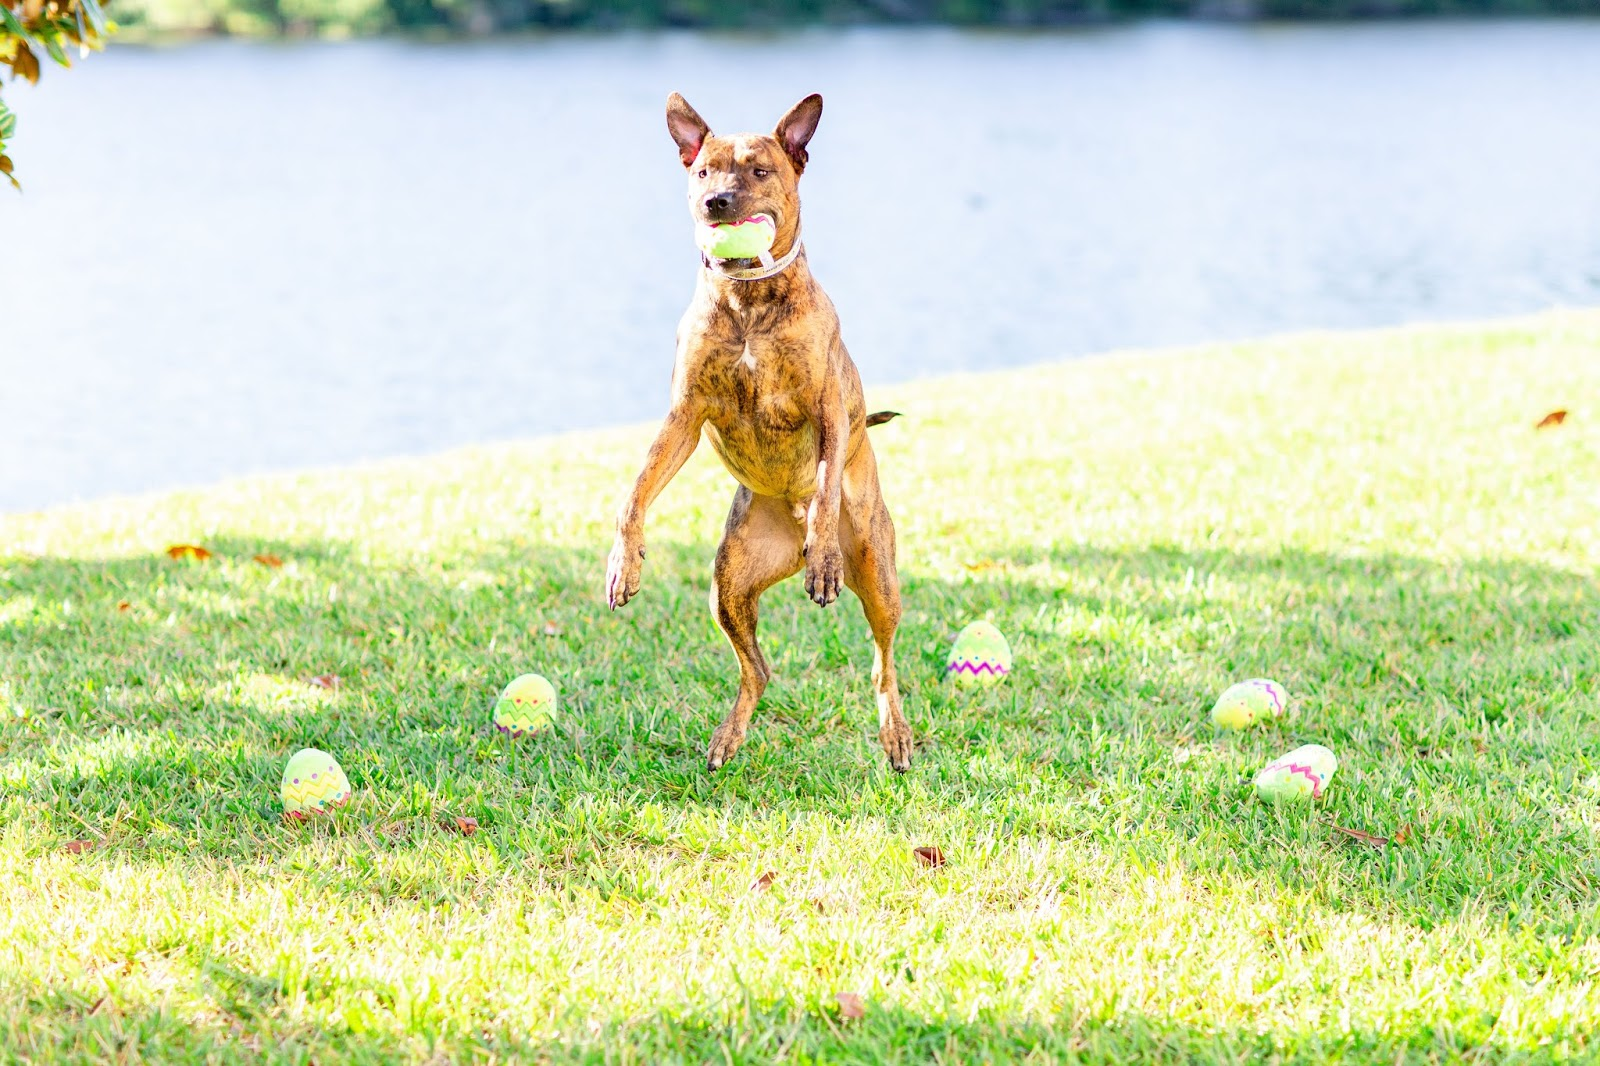 Brindle rescue dog catching a plush easter egg dog toy in a field in florida